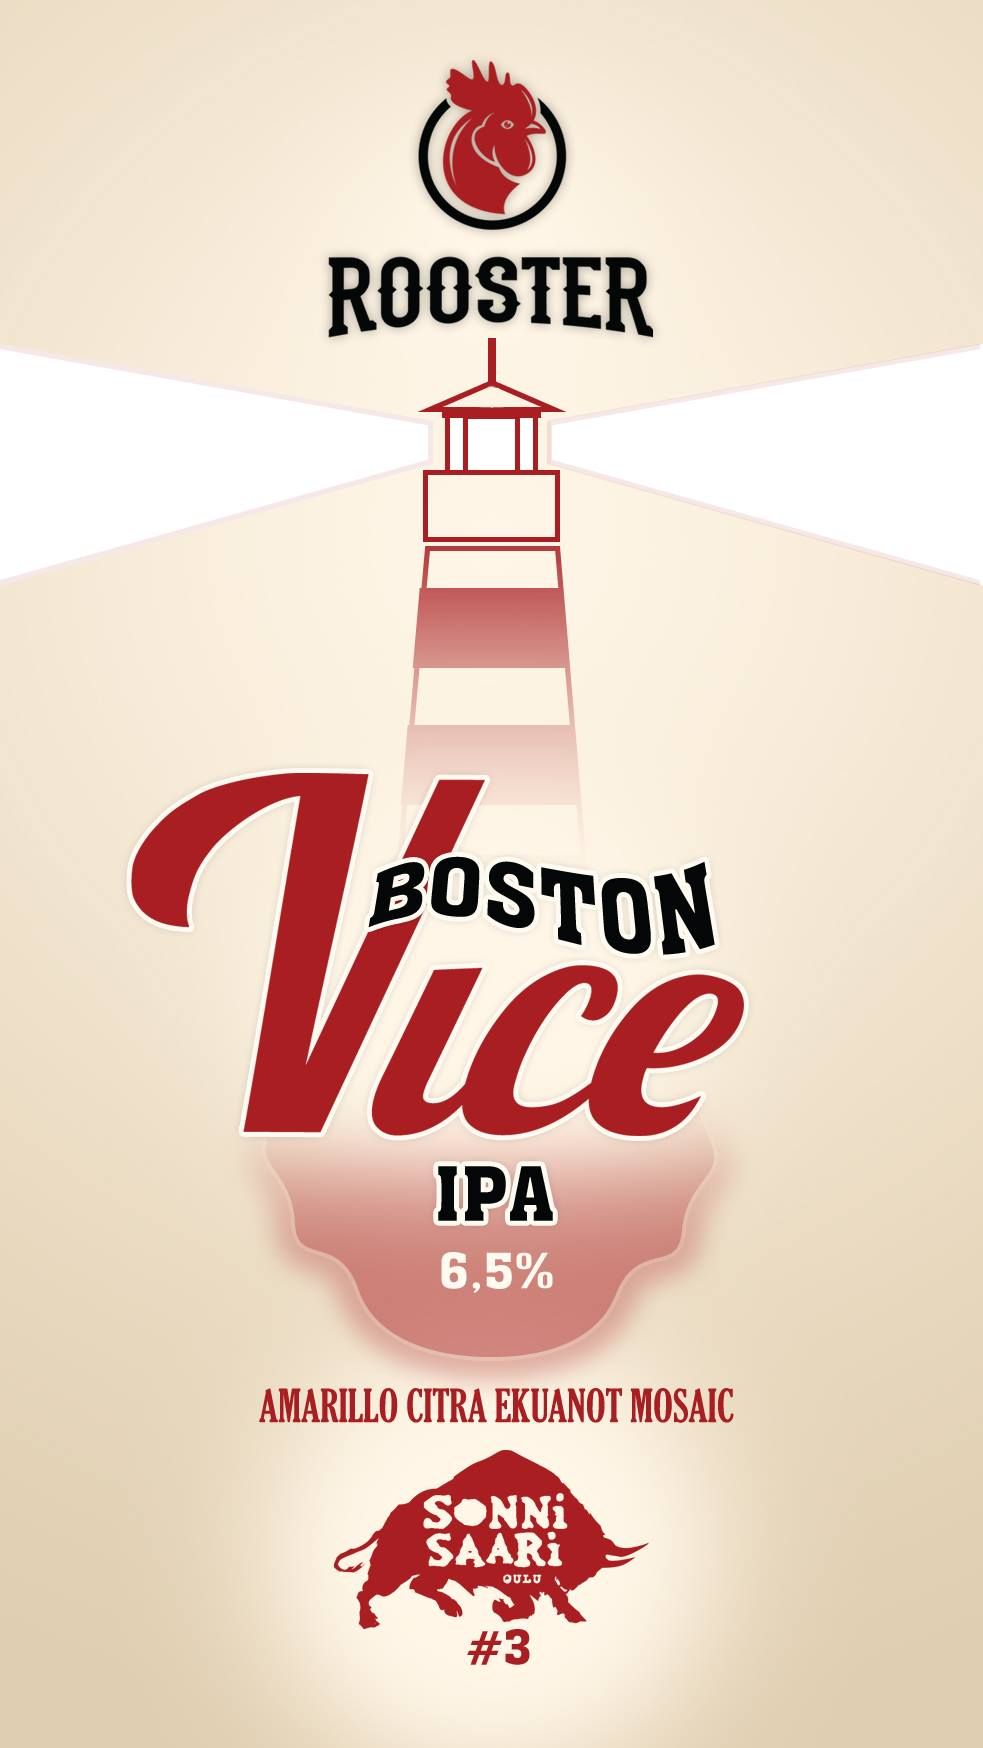 Boston Vice IPA